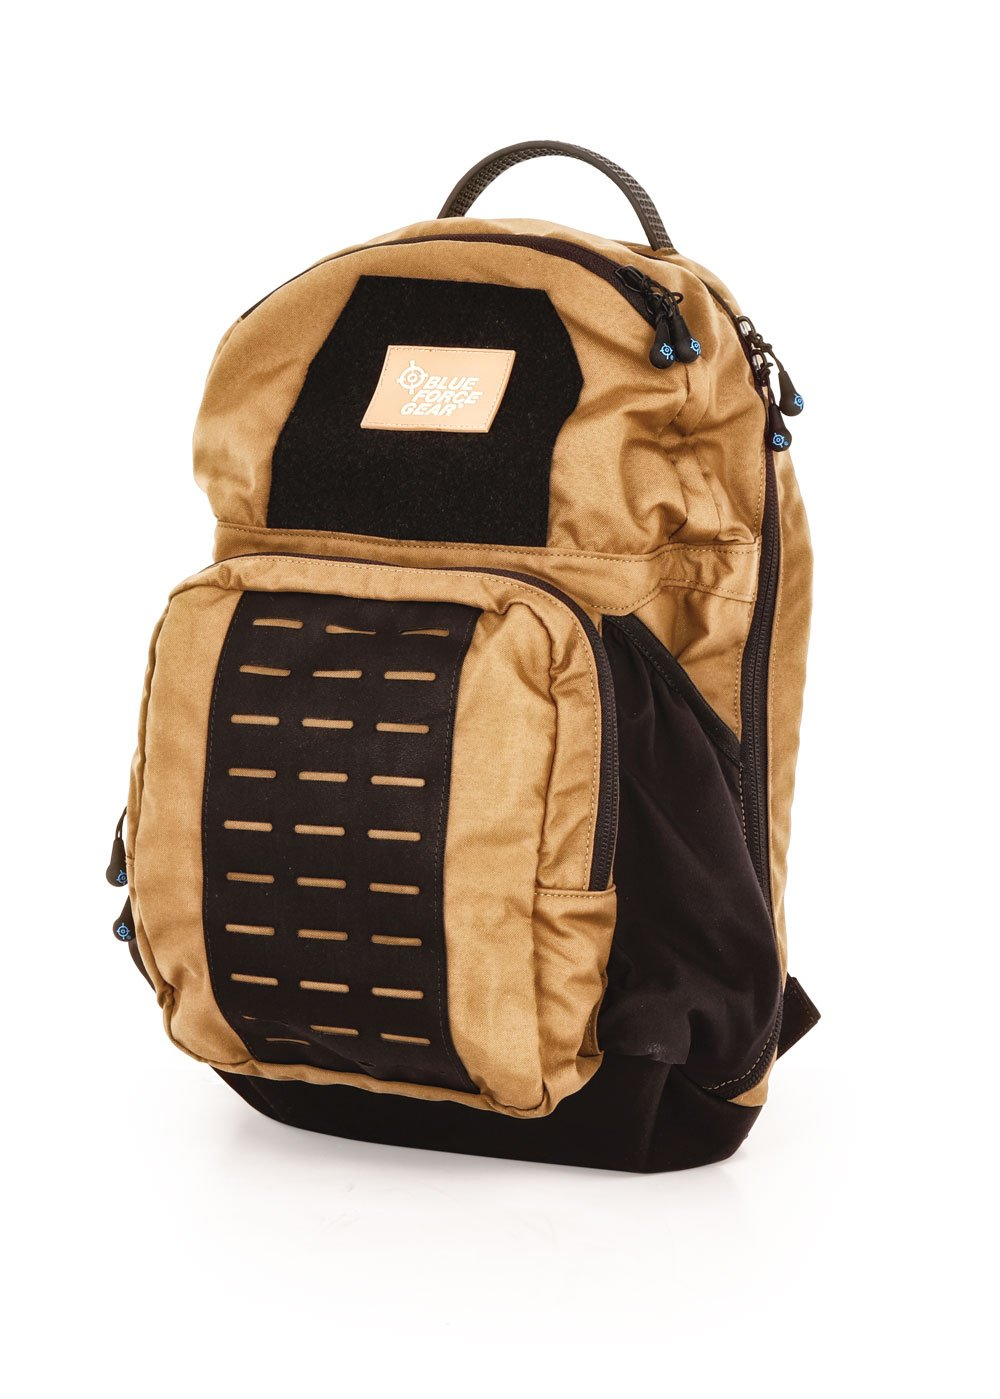 Blue Force Gear Tracer BackPack Tan and Black